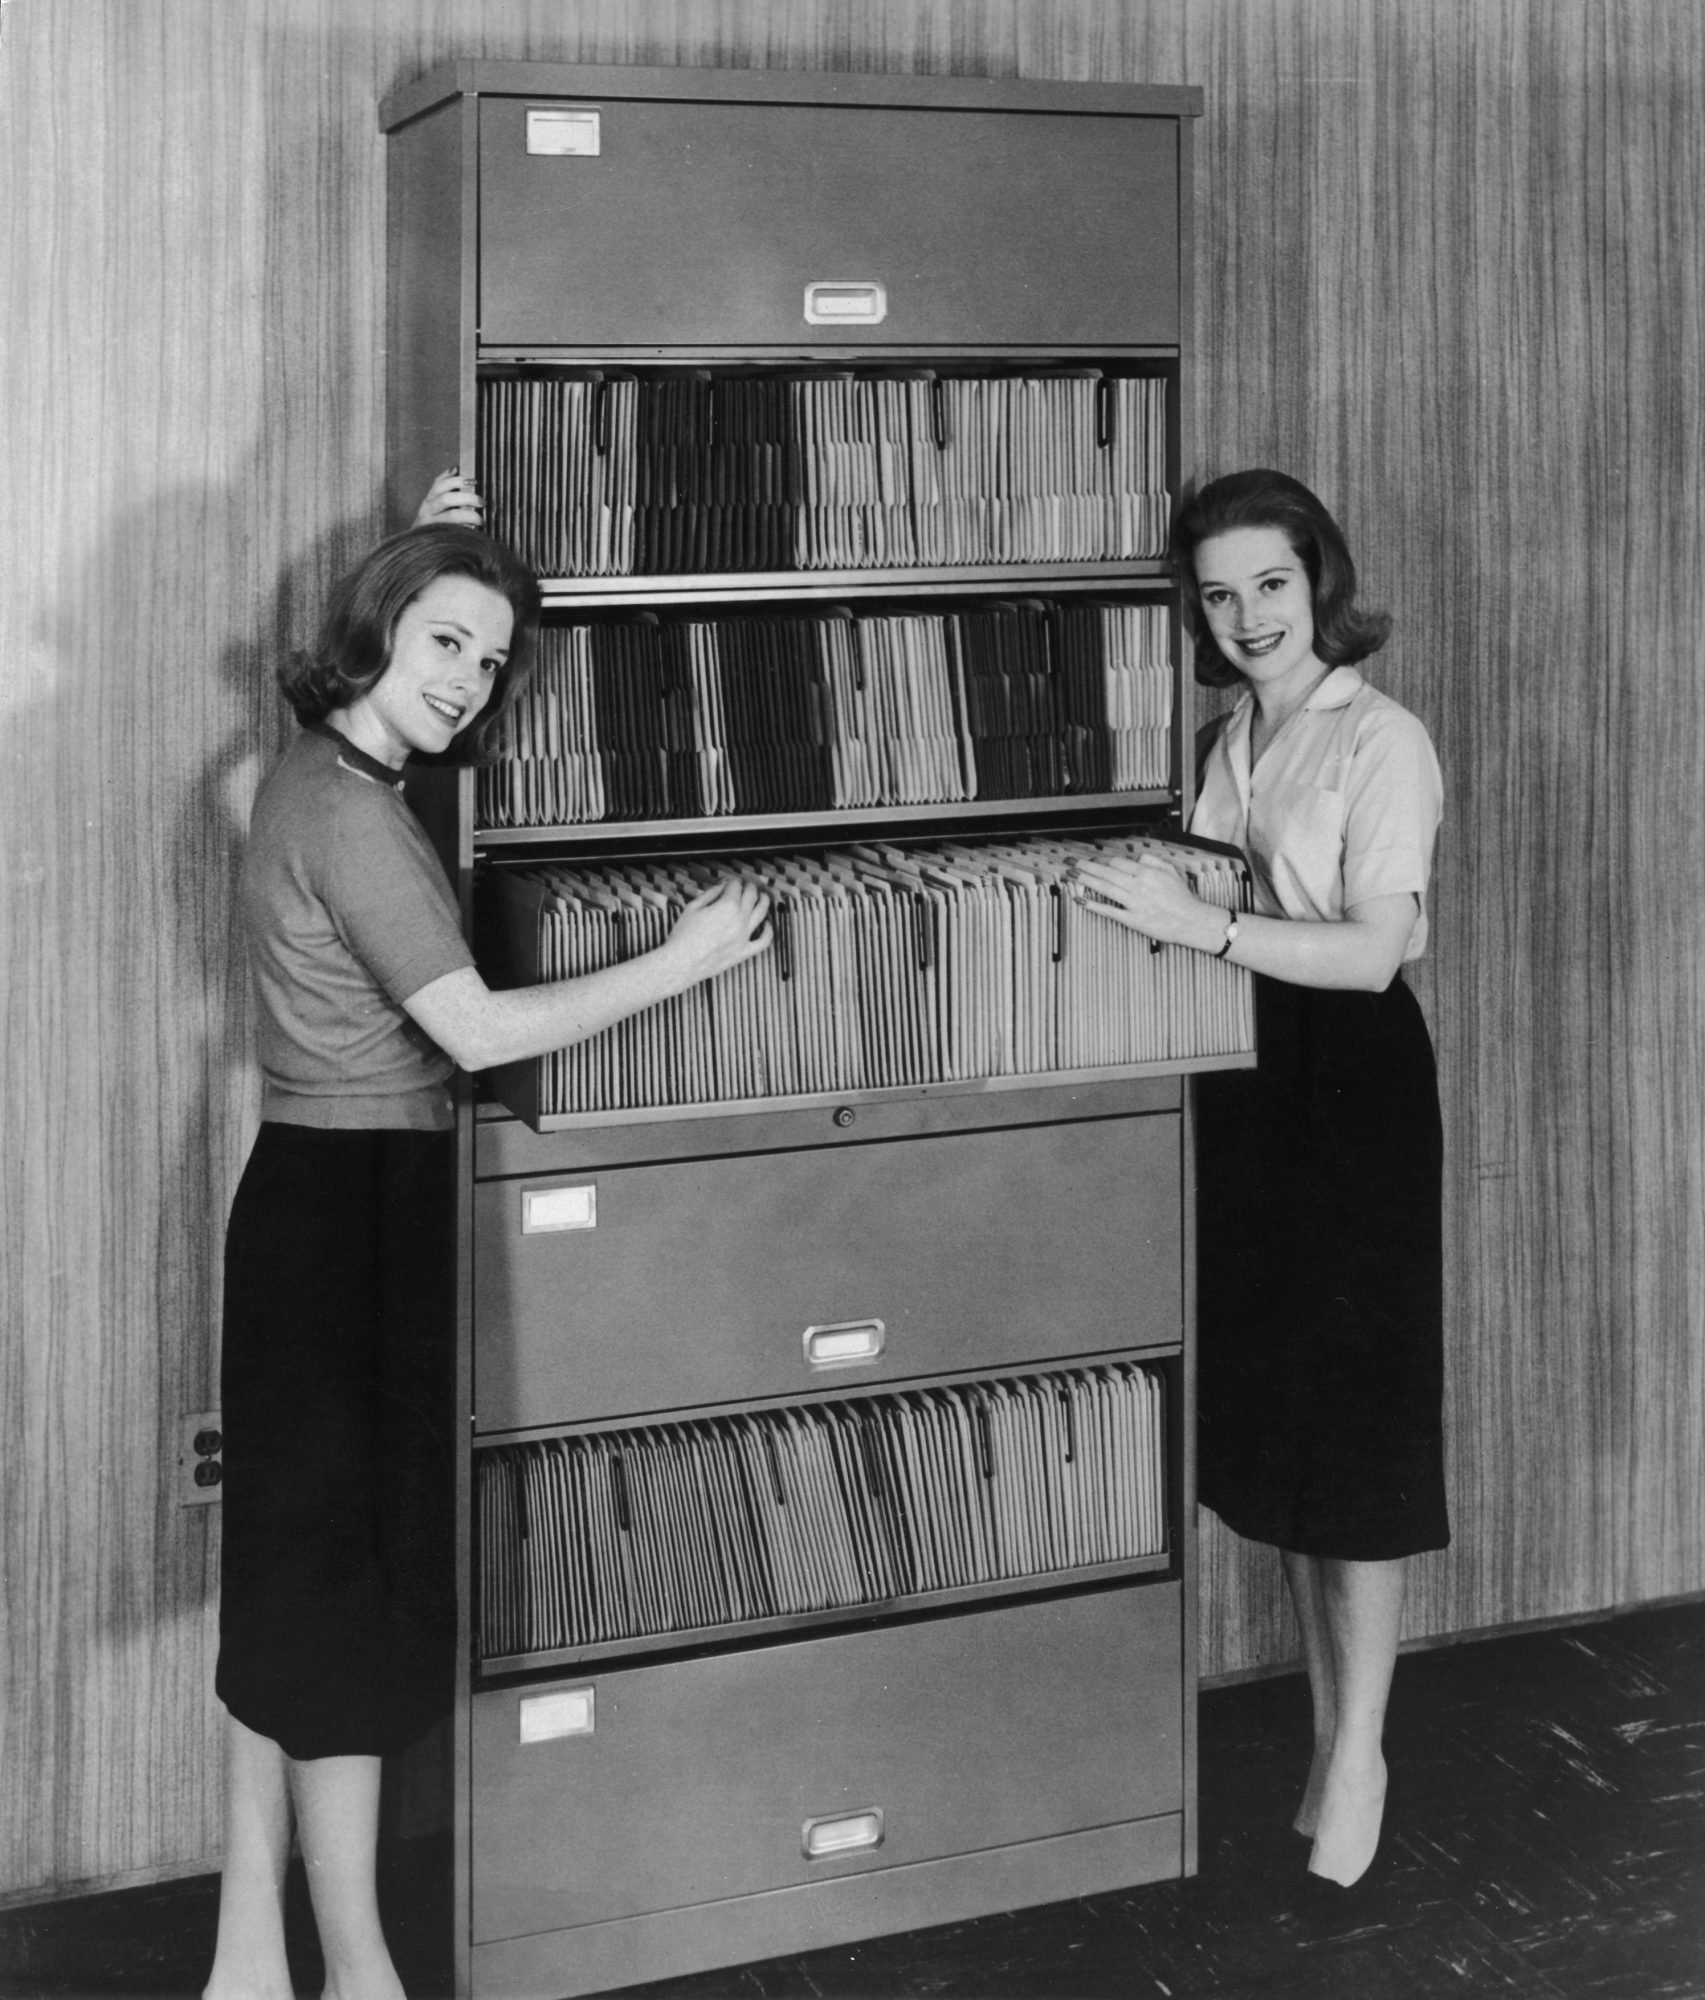 Vintage 1960s Women with Filing Cabinet in Office